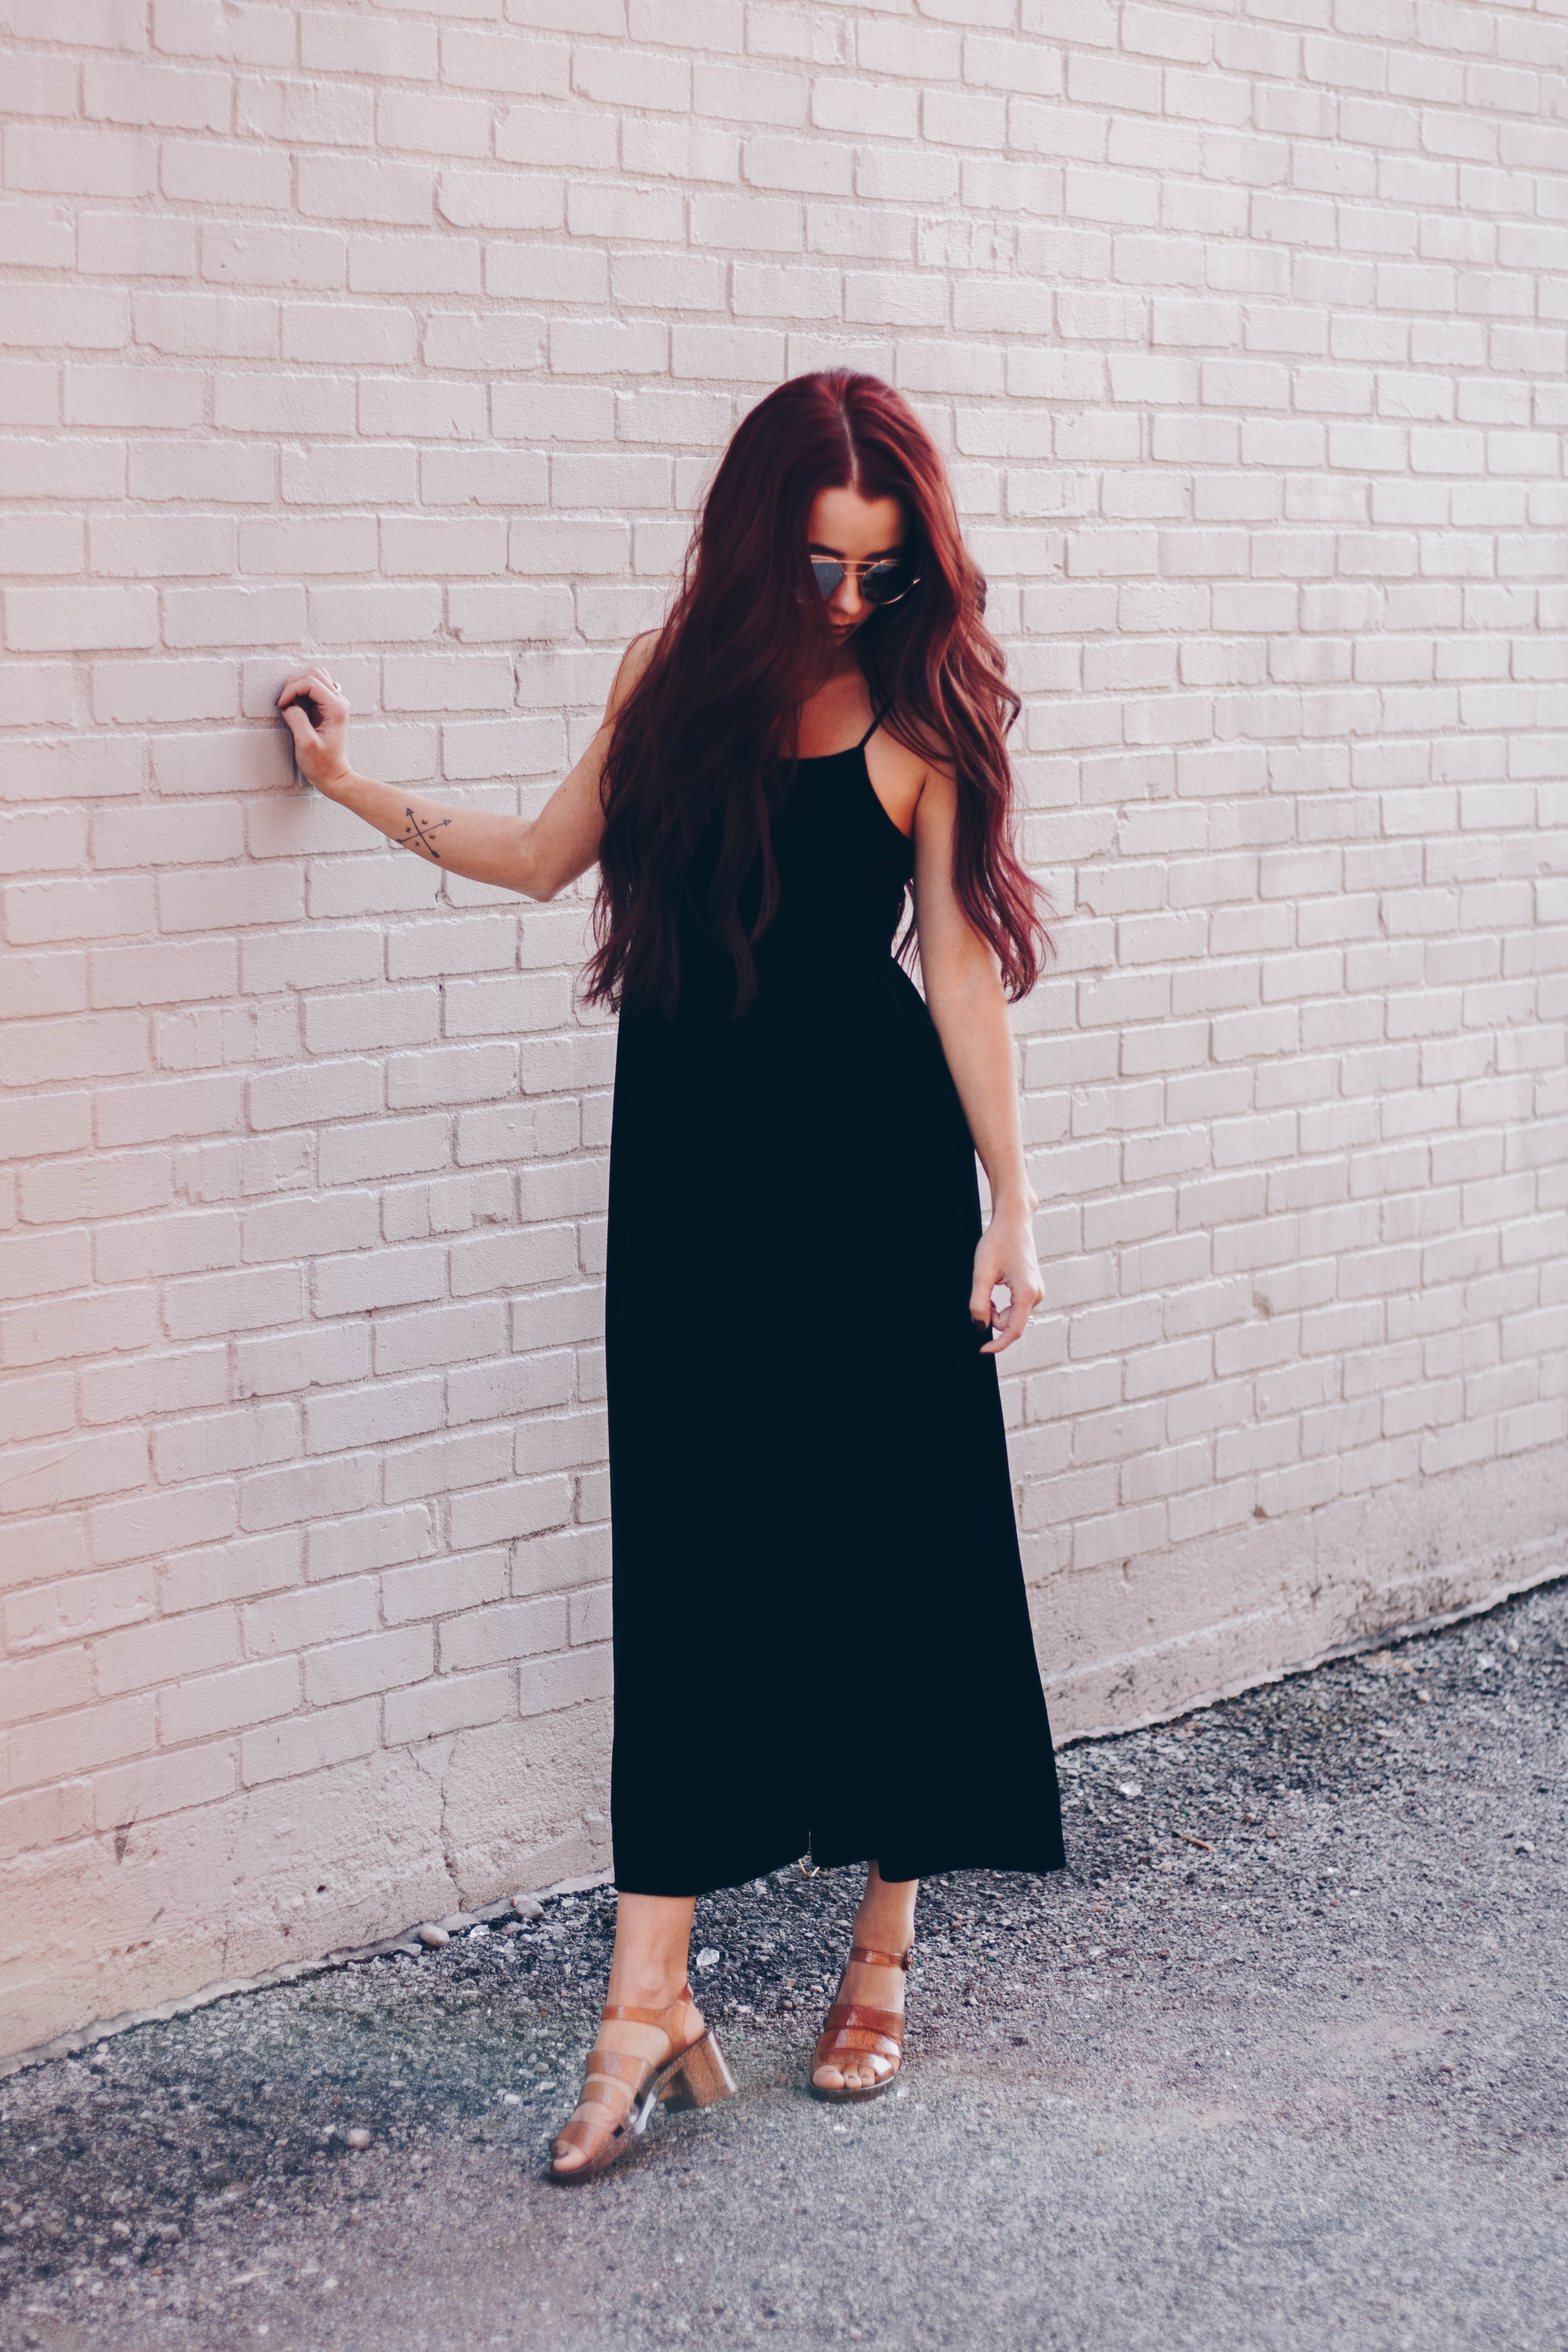 Velvet Jumpsuit,  Urban Outfitters  || Jelly Shoes,  Urban Outfitters  || Hair Extensions,  Extensions by Marie  || Sunglasses,  Nordstrom